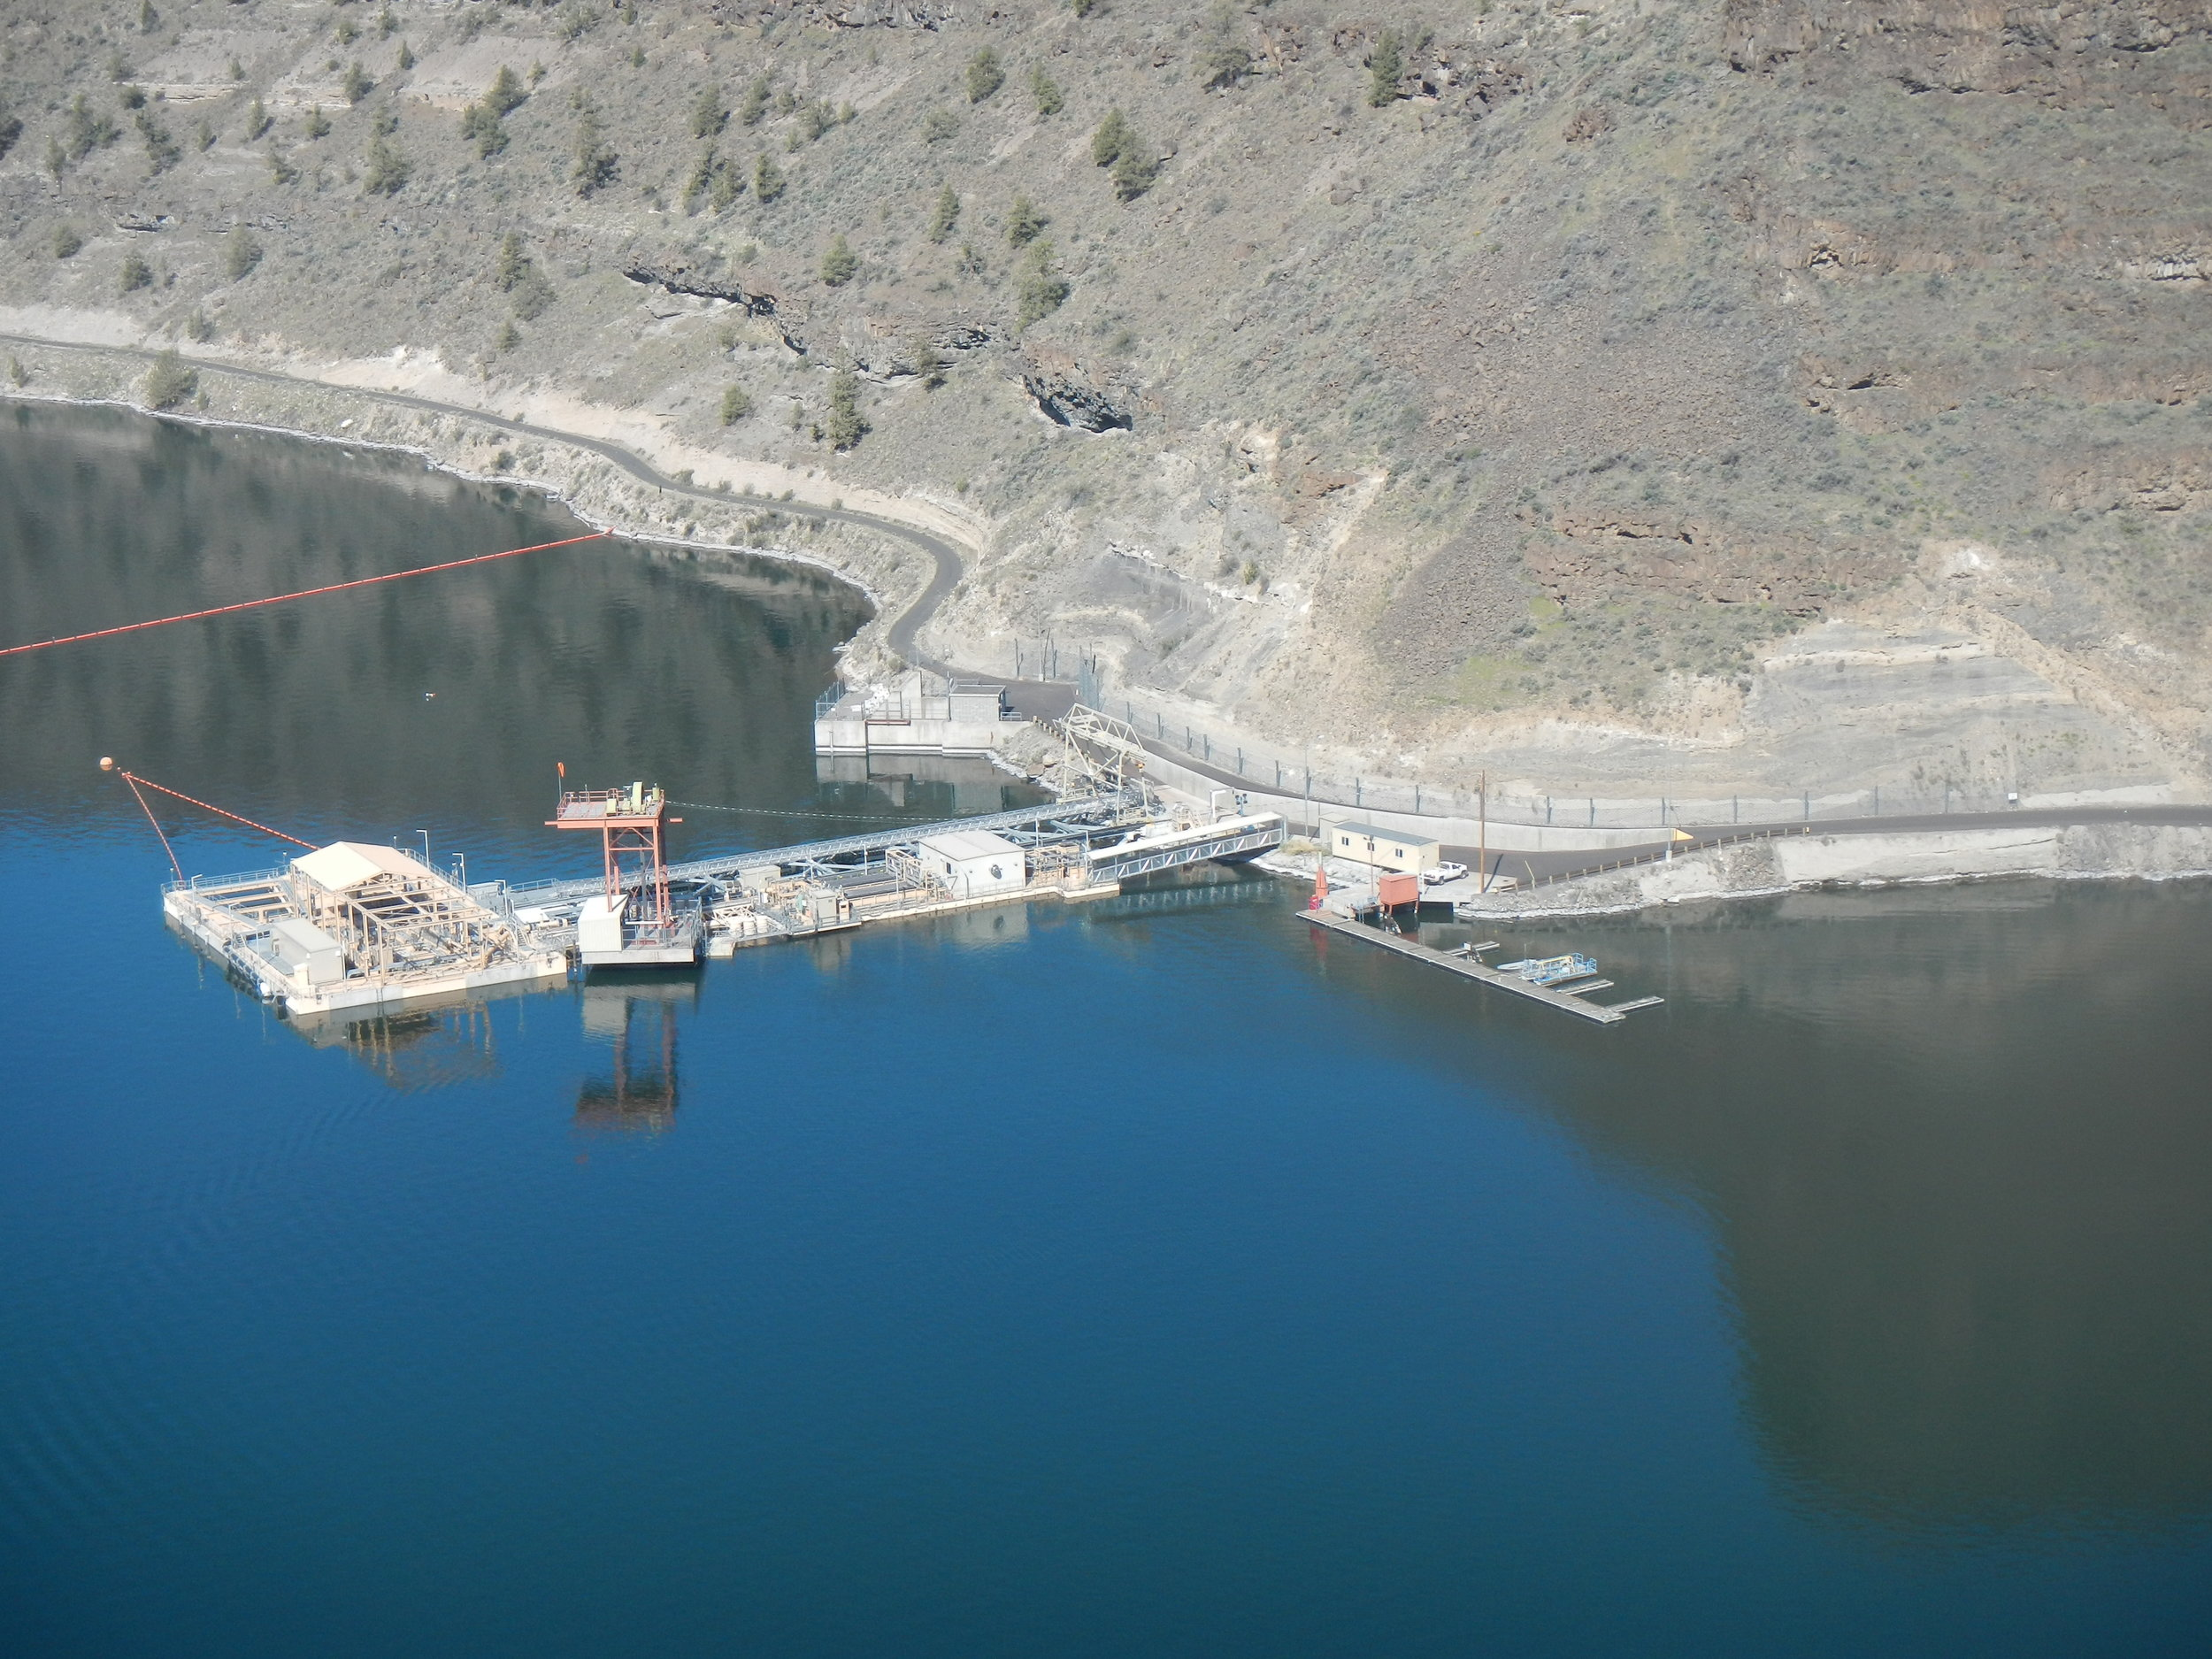 Selective Water Withdrawal Facility in Lake Billy Chinook Photo by Greg McMillan